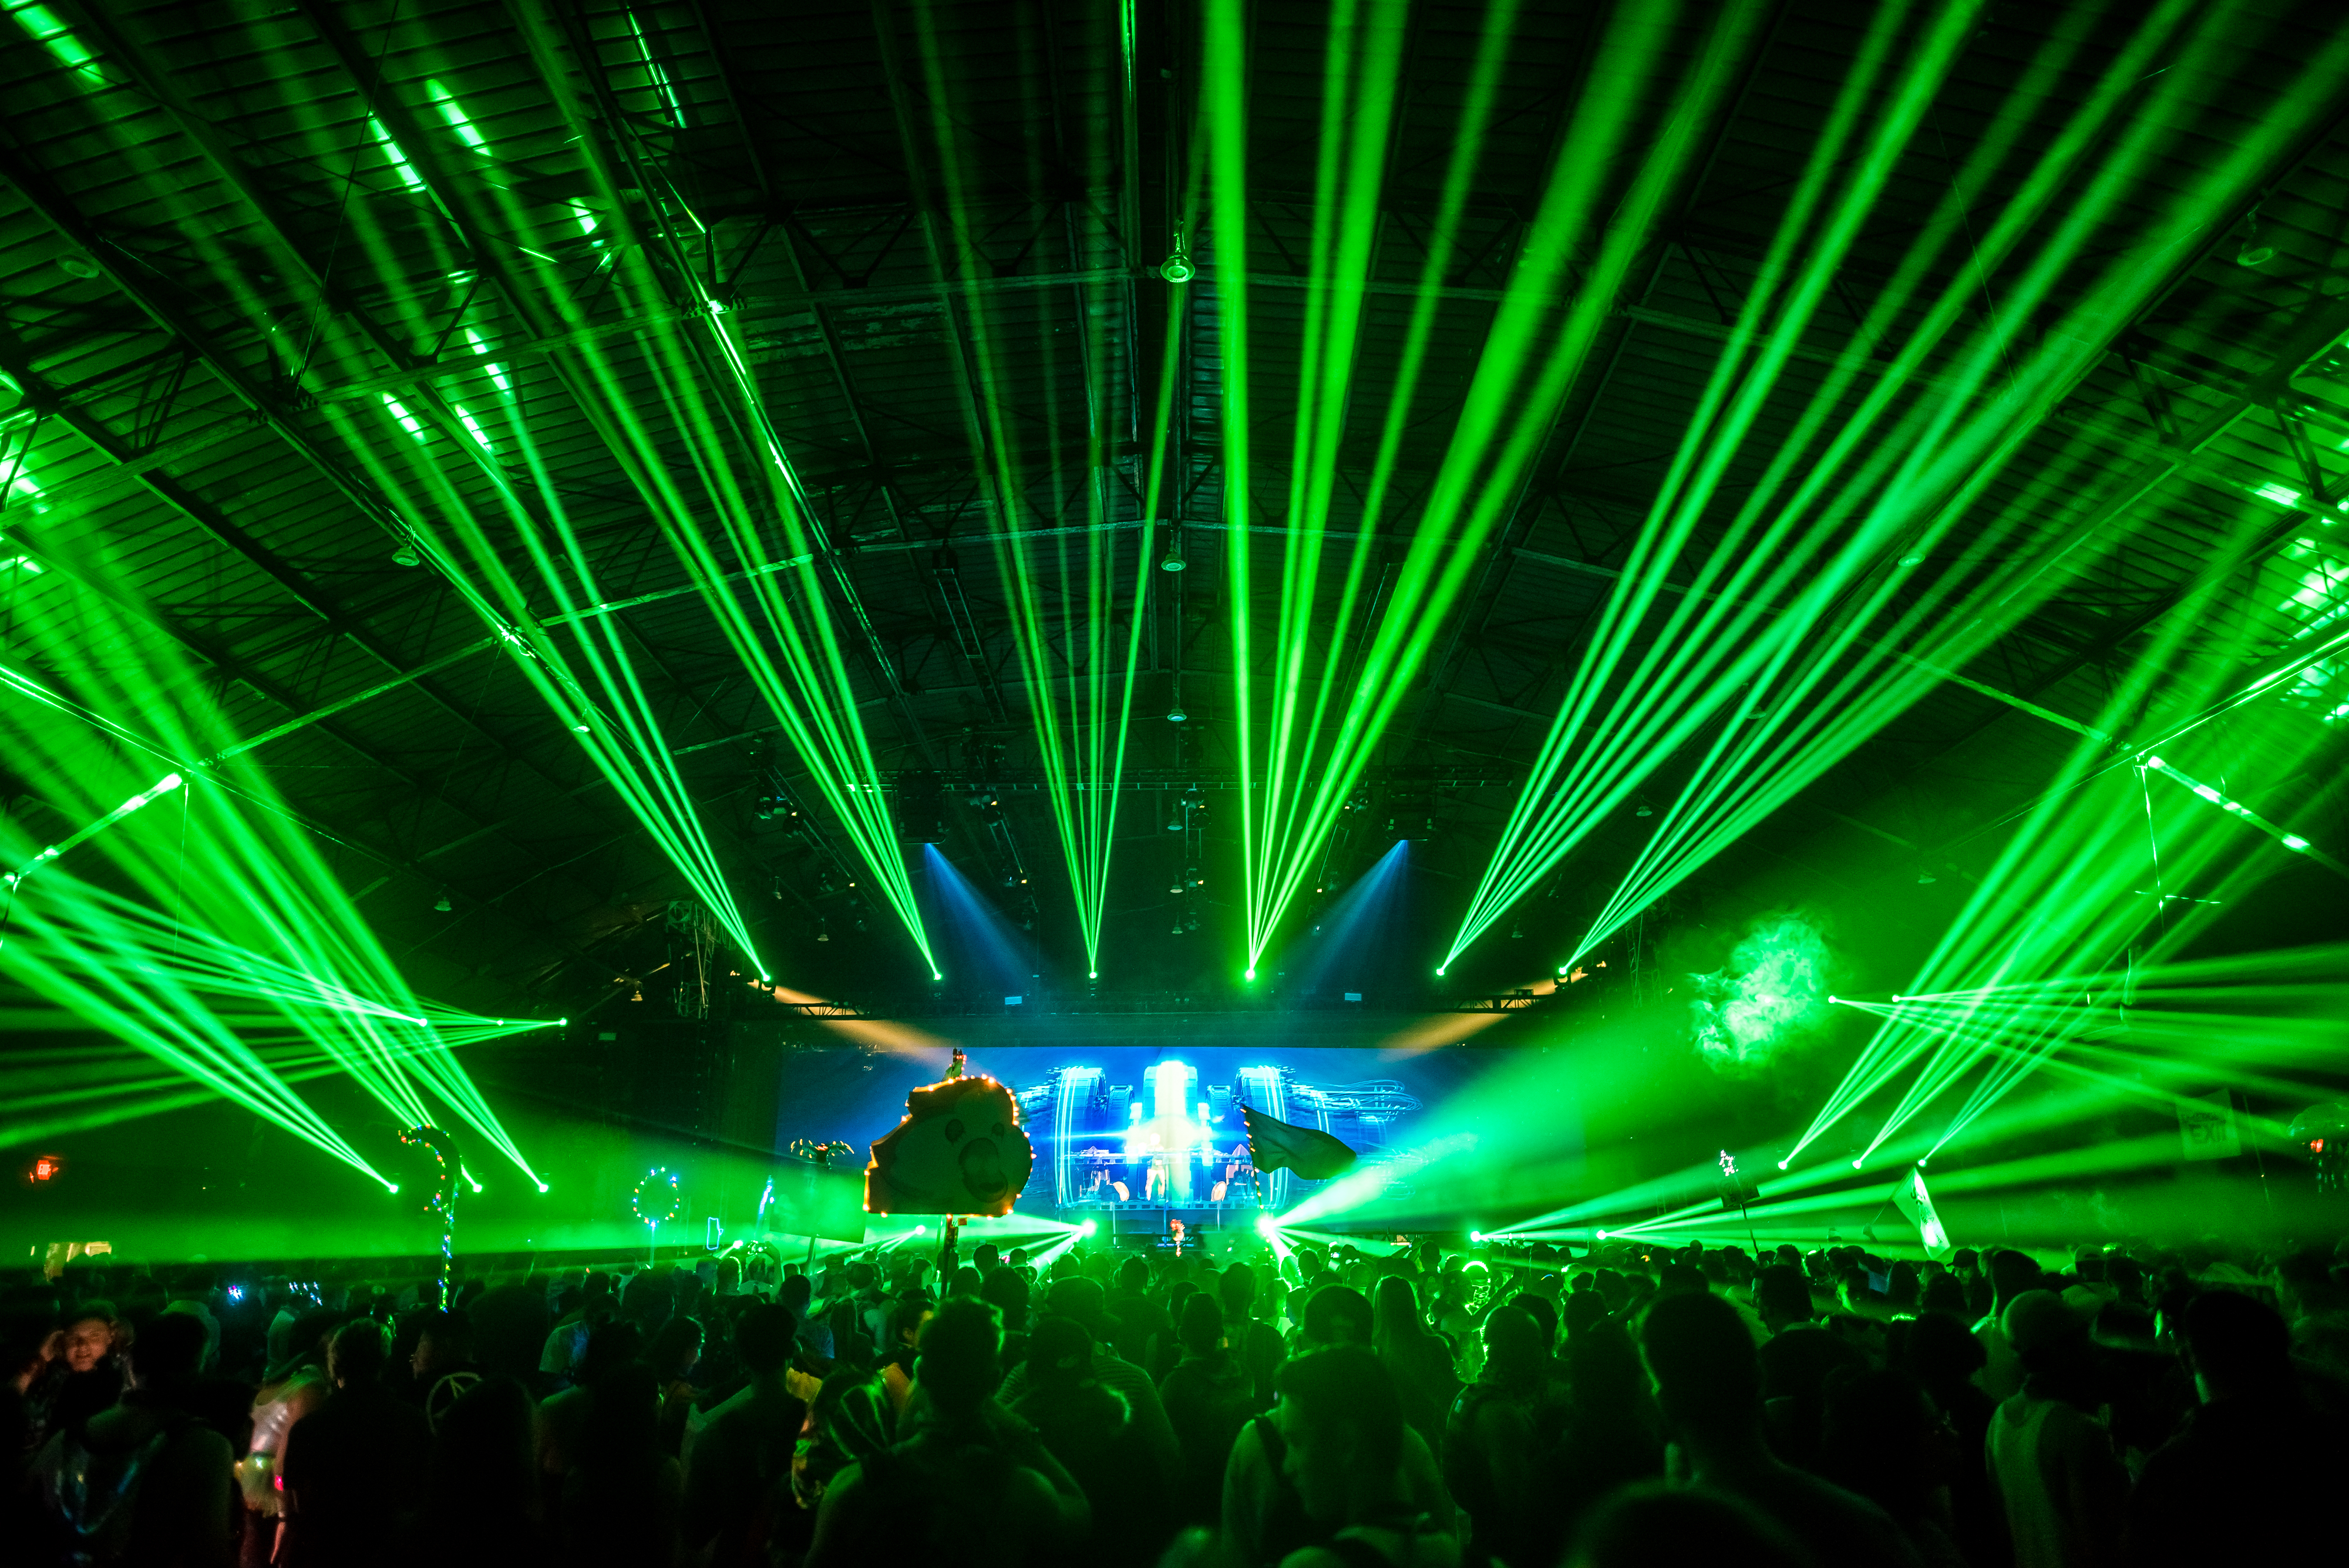 Green lasers over the stage